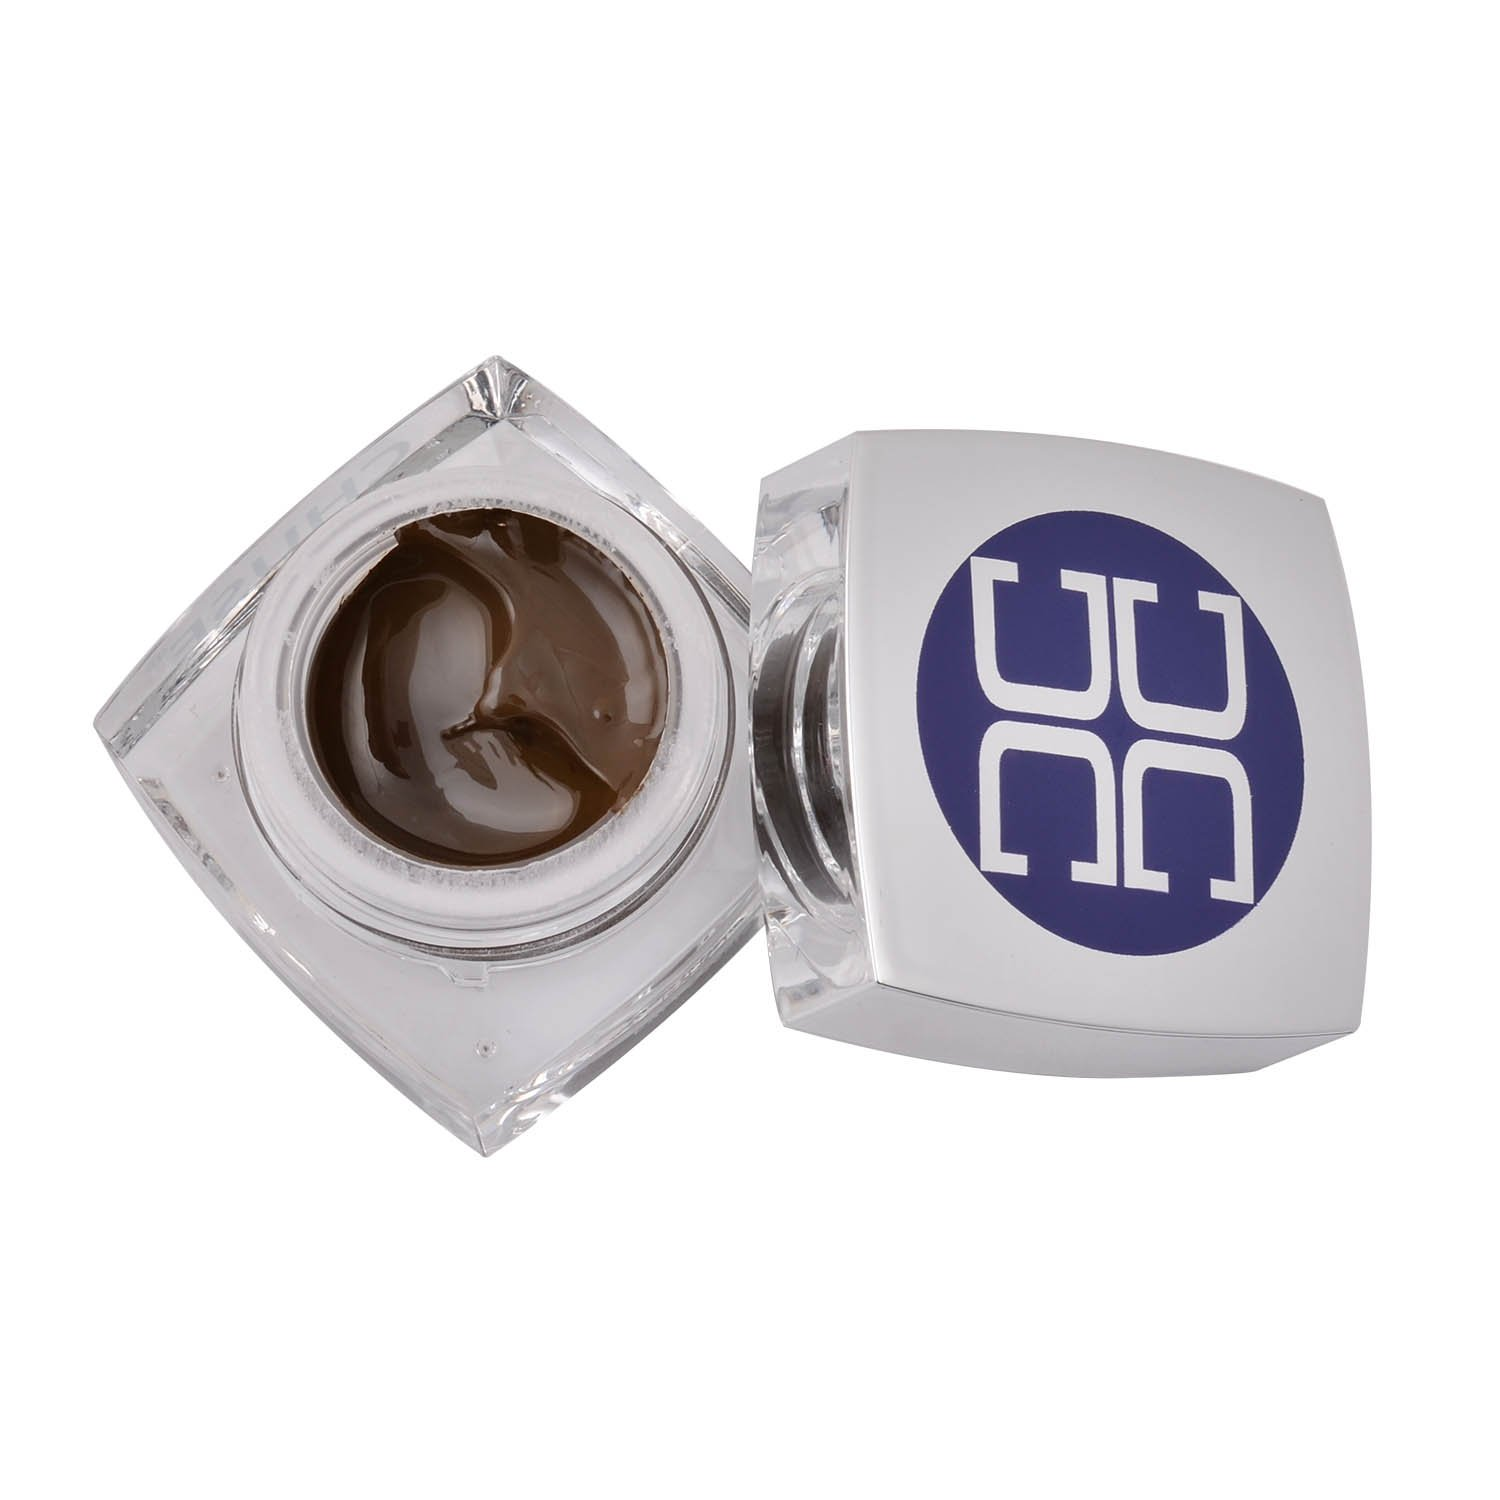 CHUSE M264, 7g, Brown Coffee, Passed DermaTest, Paste Eyebrow Pigment for Microblading Micro Pigment Cosmetic Color